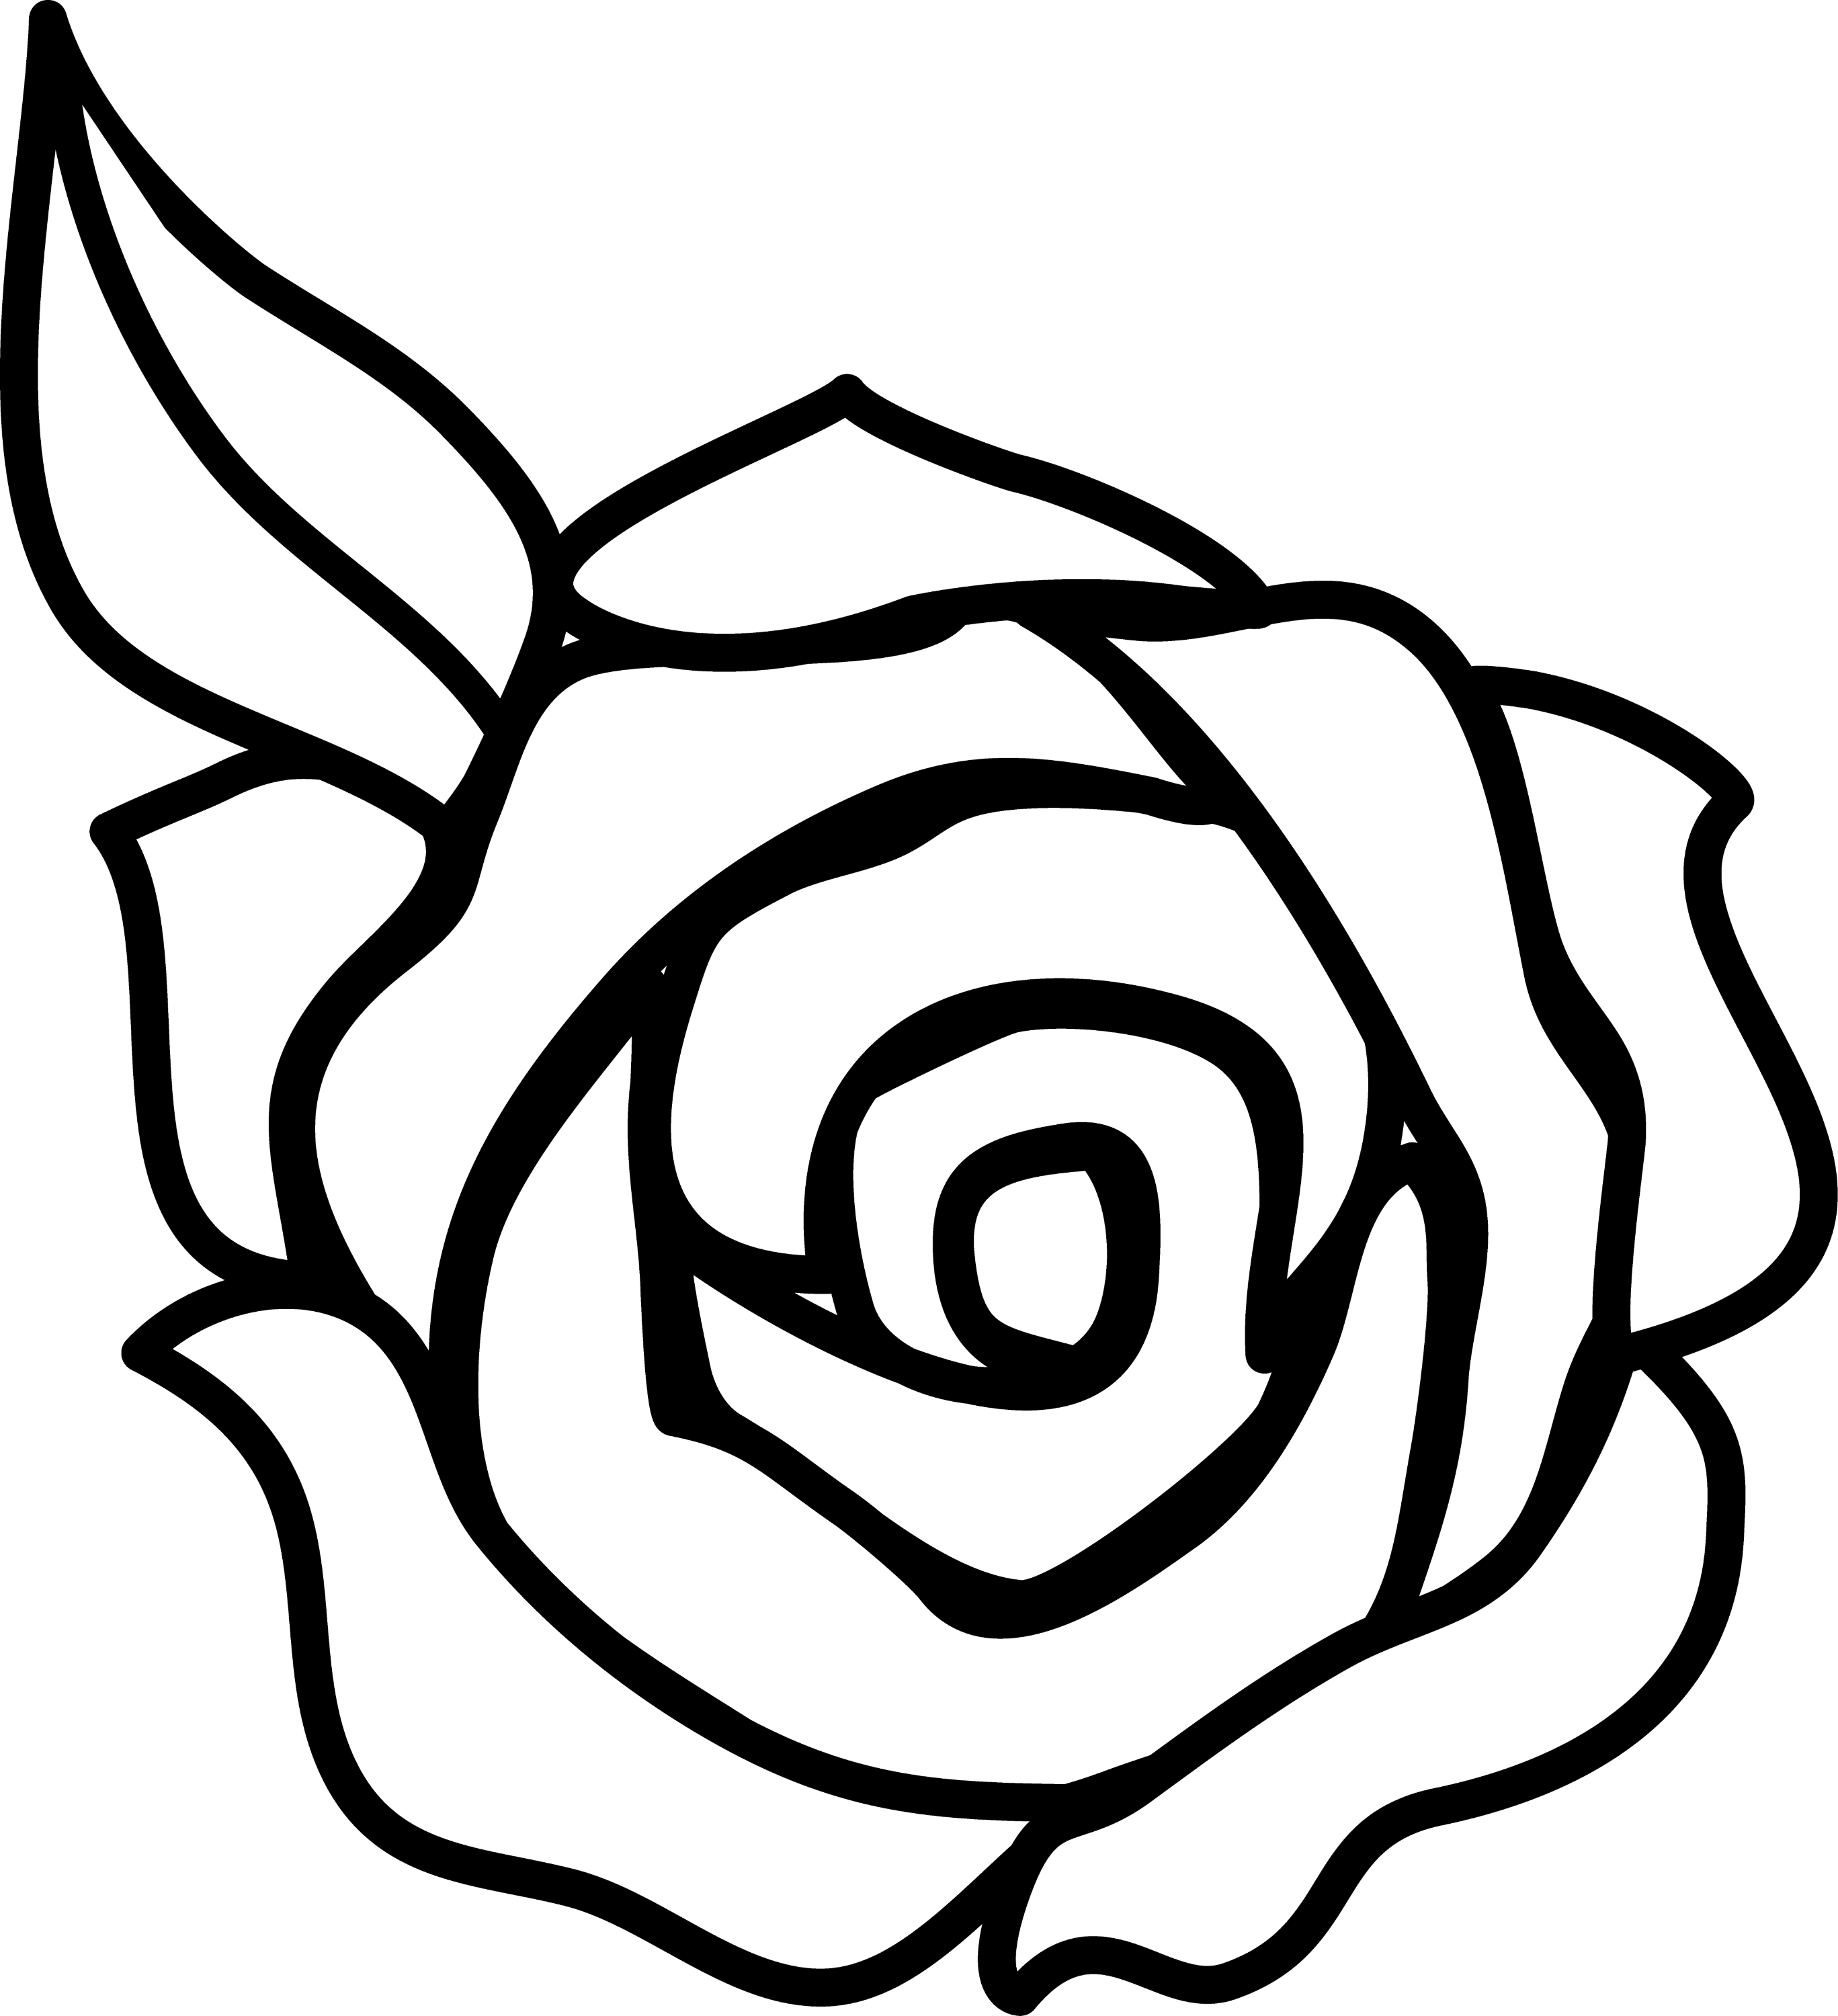 Line Drawing Of A Rose : Colorable rose line art free clip